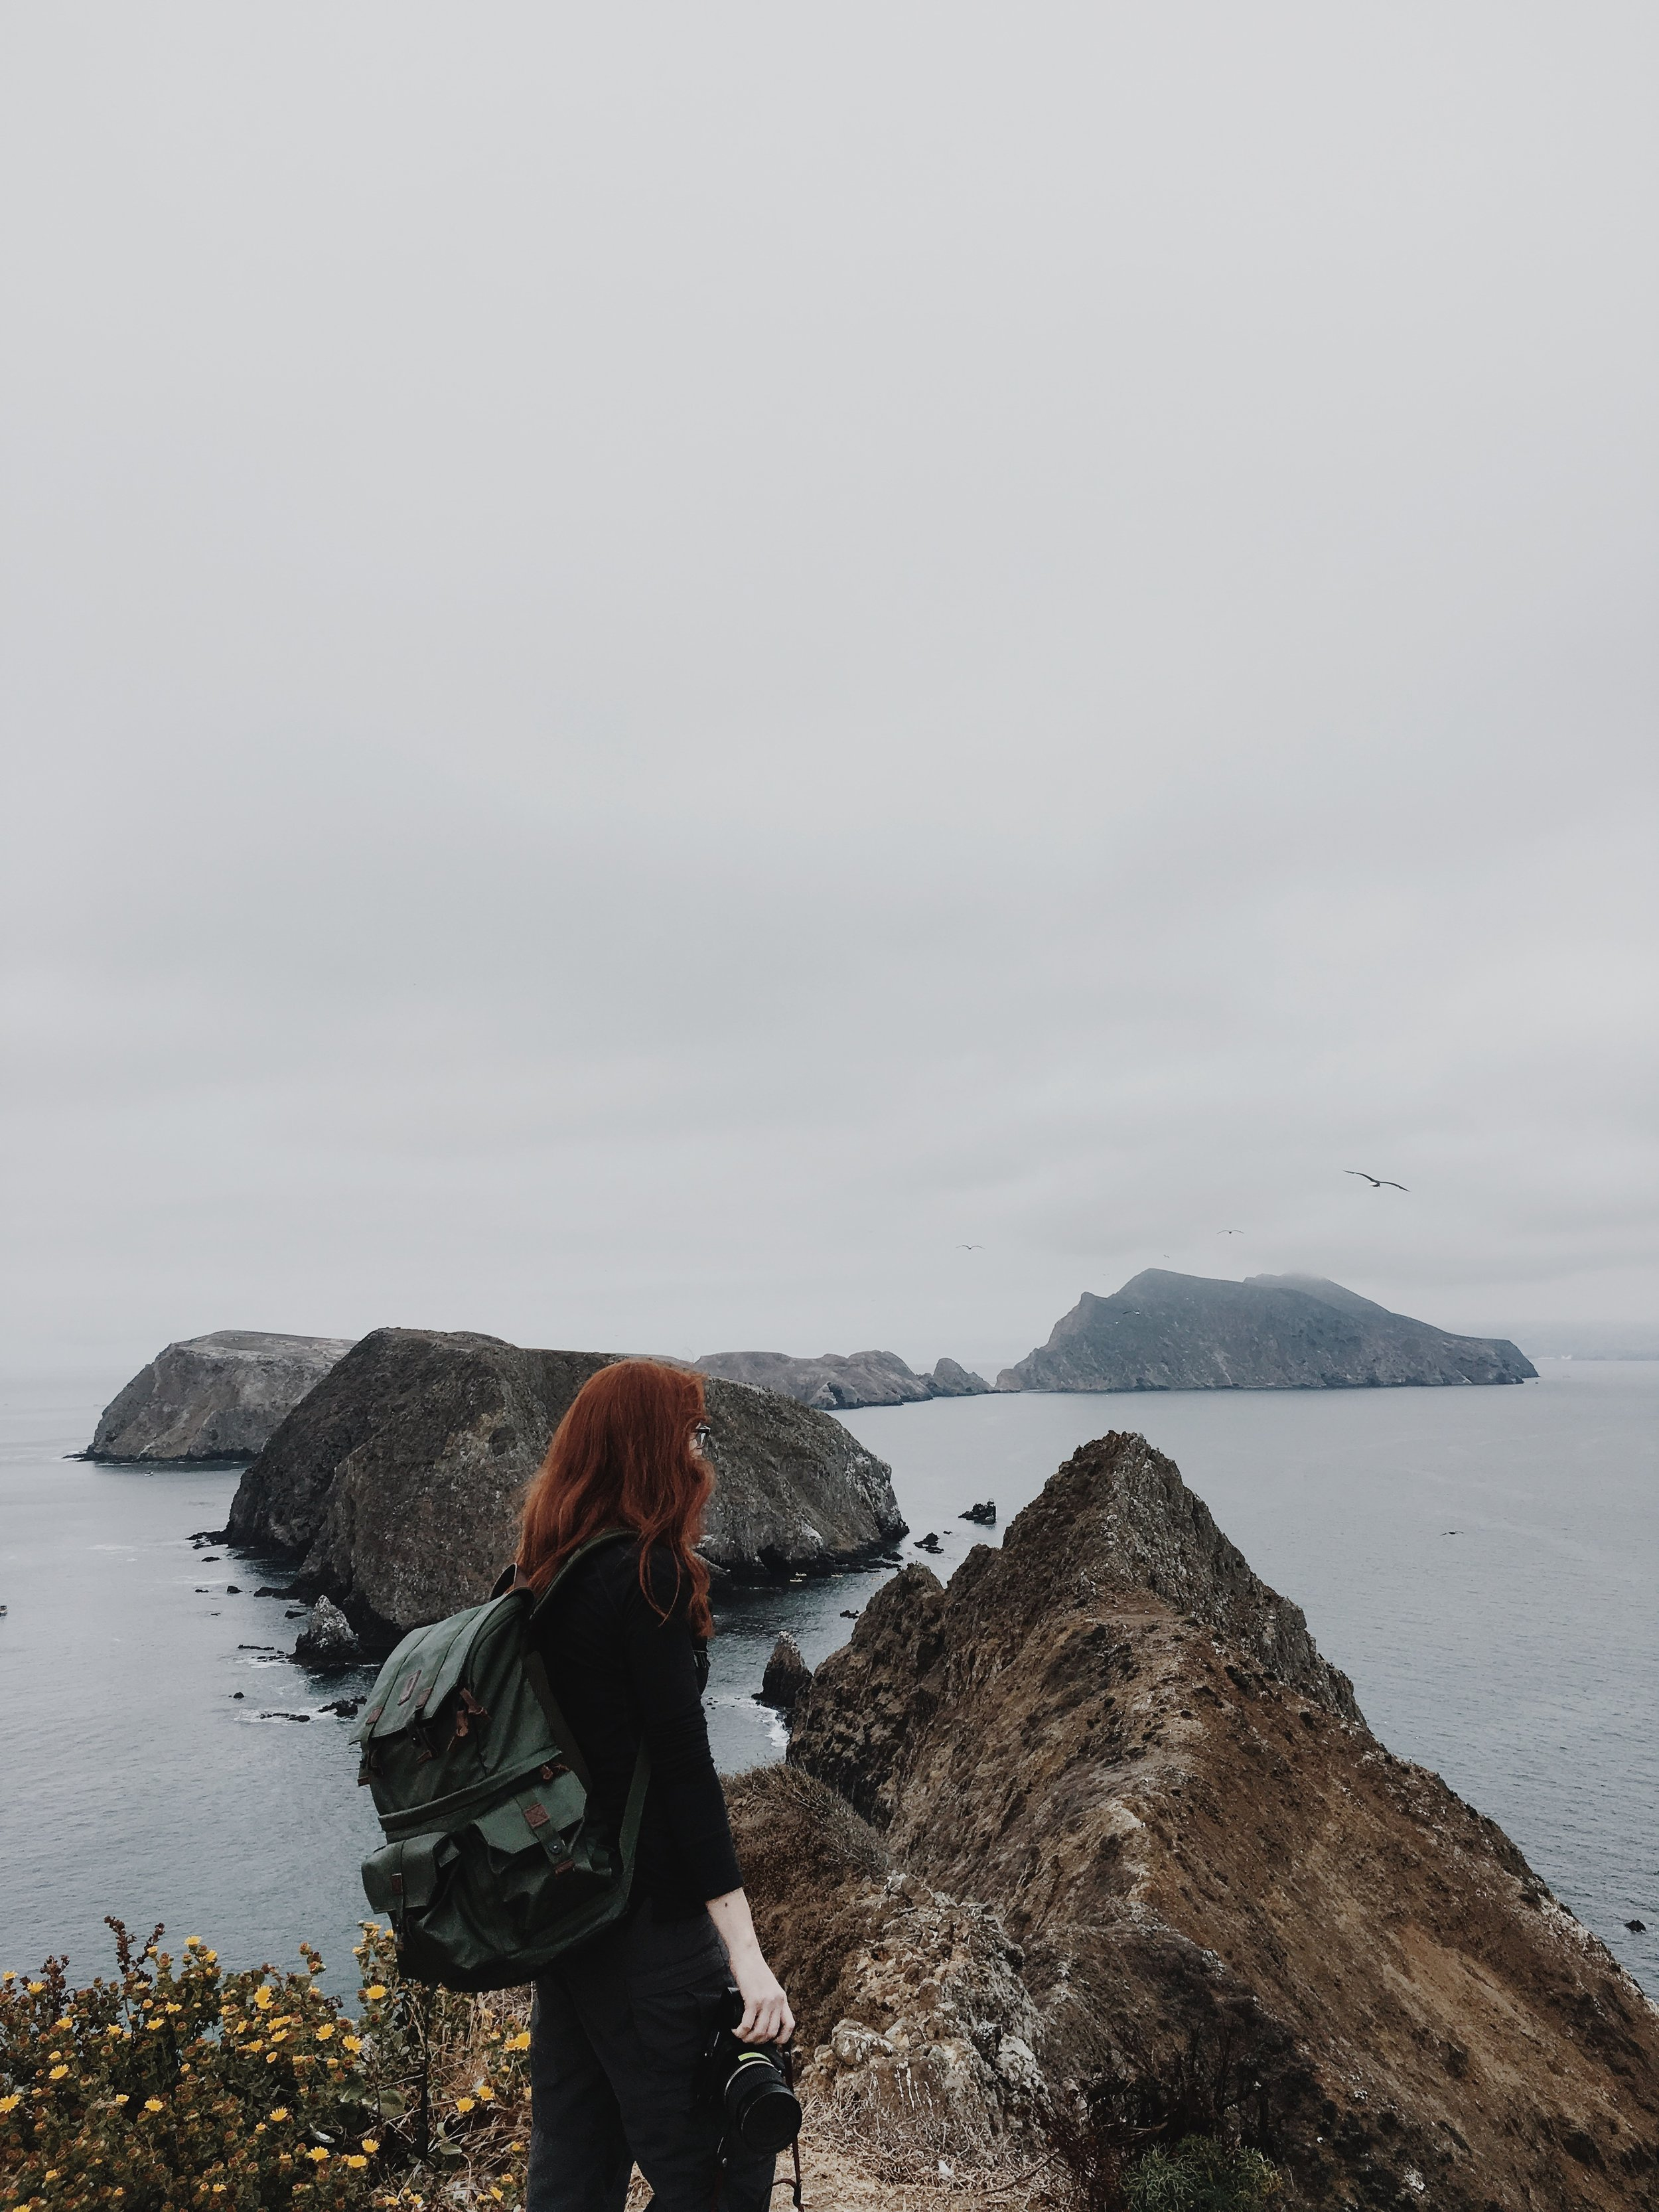 Me at Inspiration Point on Anacapa Island, Channel Islands National Park (photo by Jesse, coloring by me)